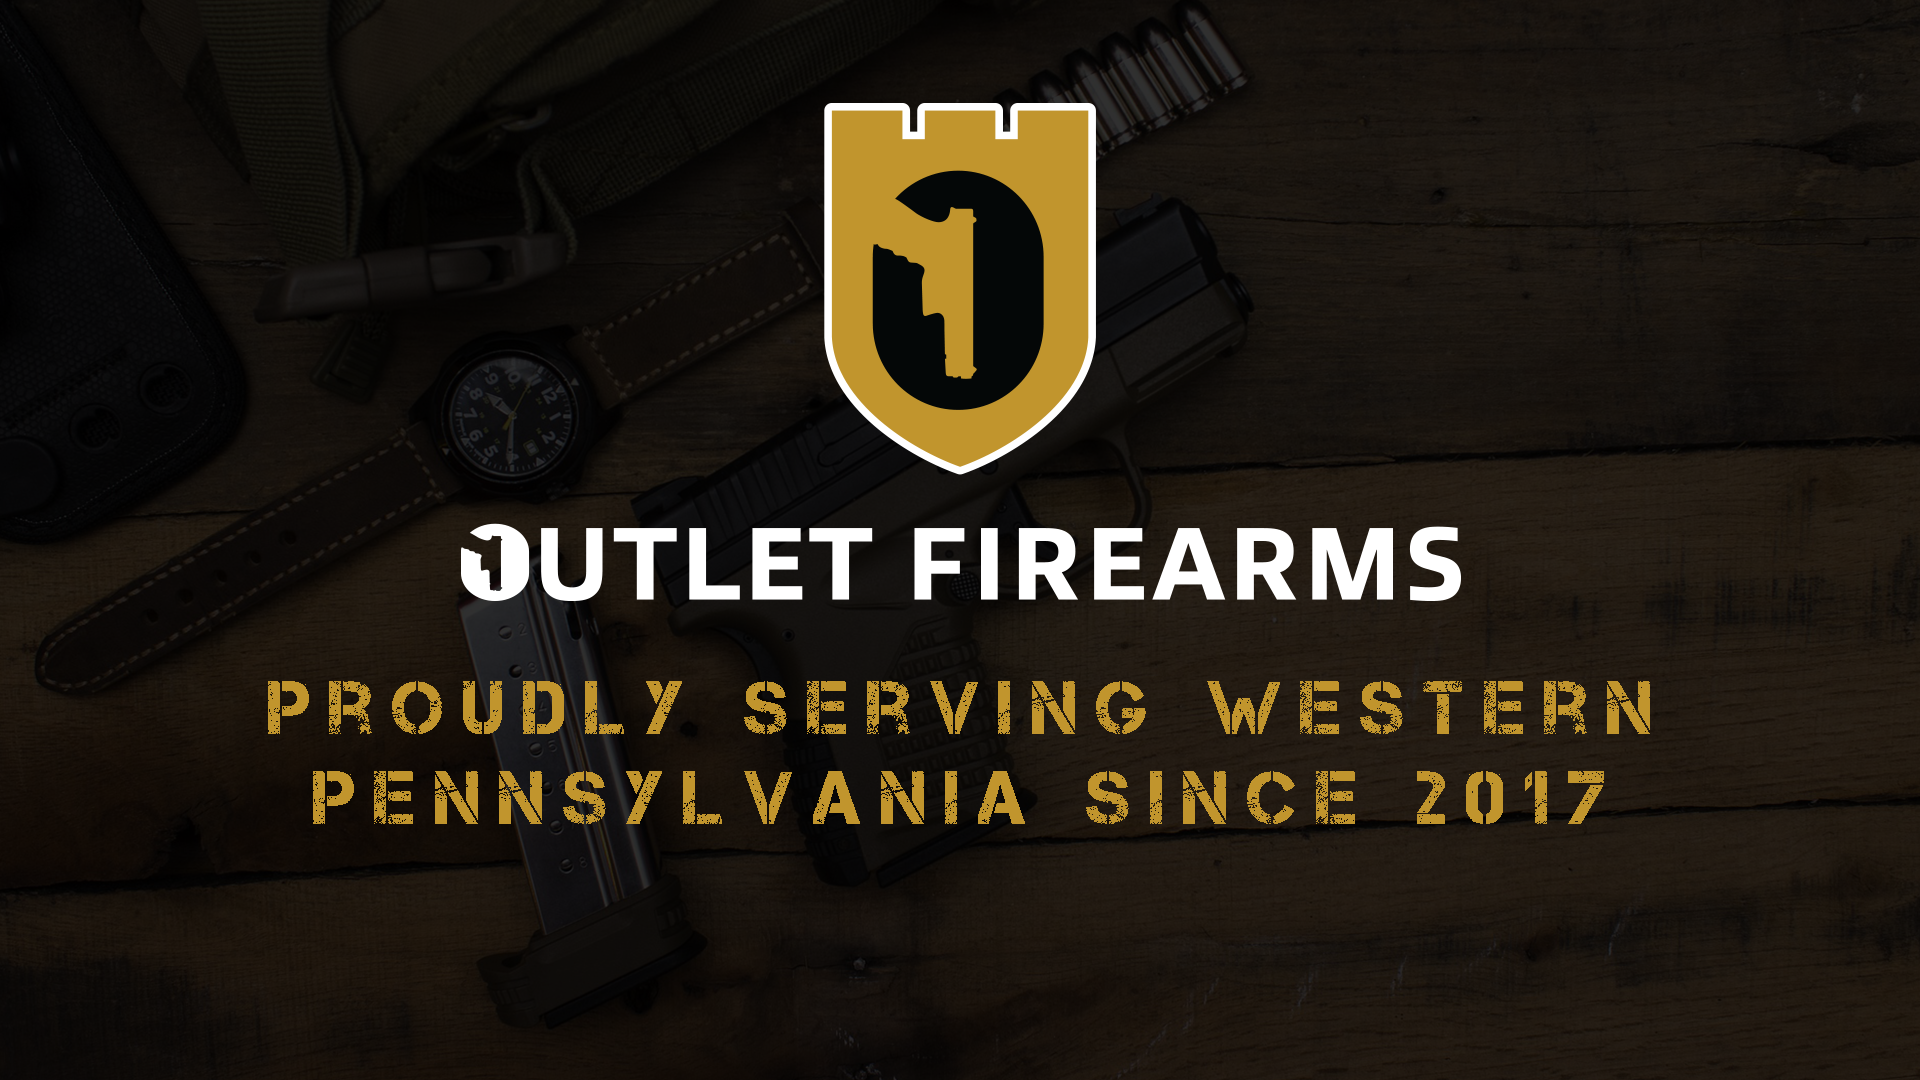 Outlet Firearms is located in Grove City, PA